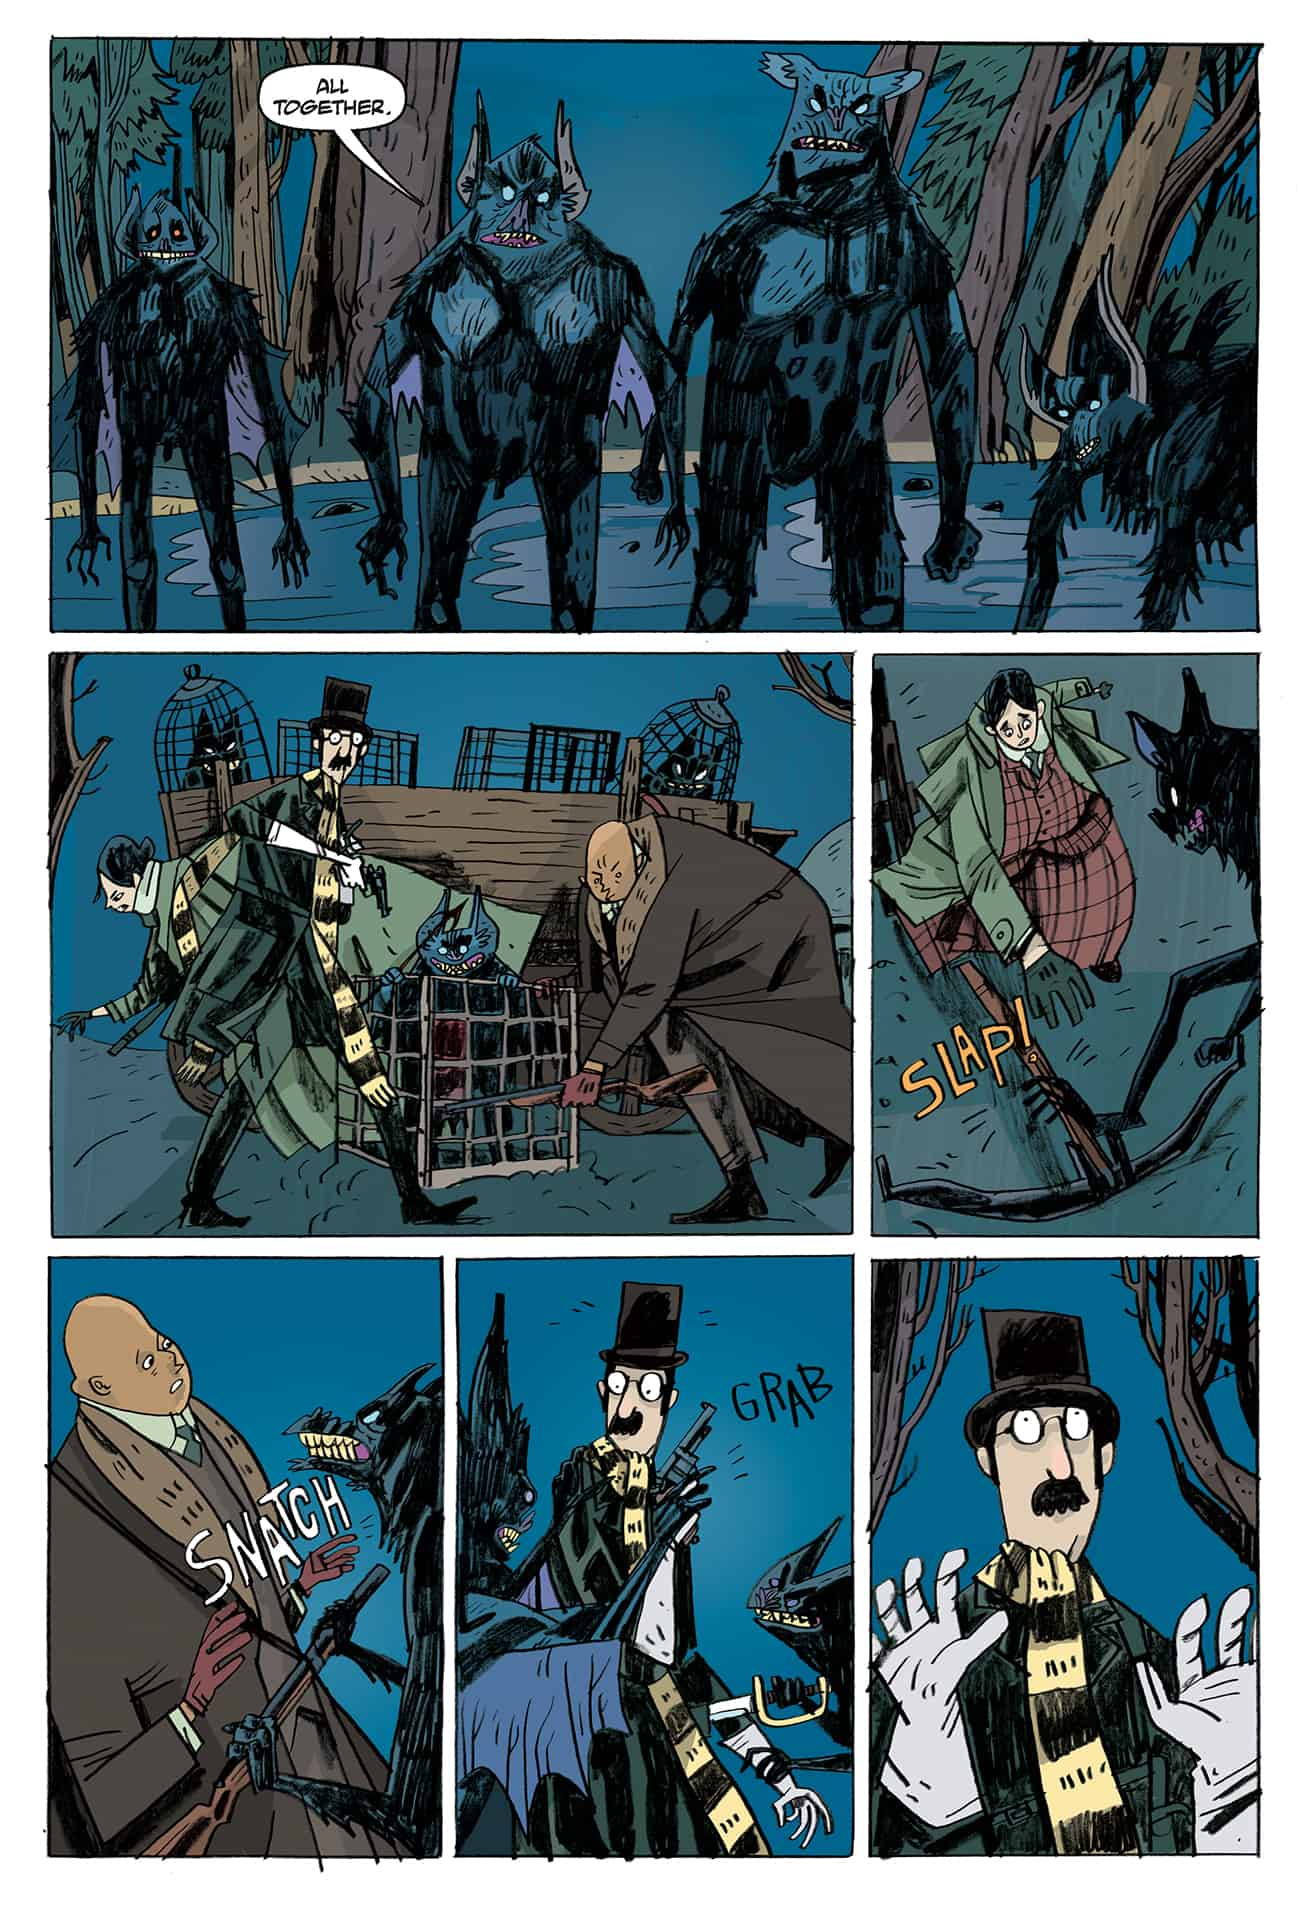 OEWE BLACKWATER PG 08 - Exclusive Preview of OUR ENCOUNTERS WITH EVIL by Mike Mignola & Warwick Johnson-Cadwell